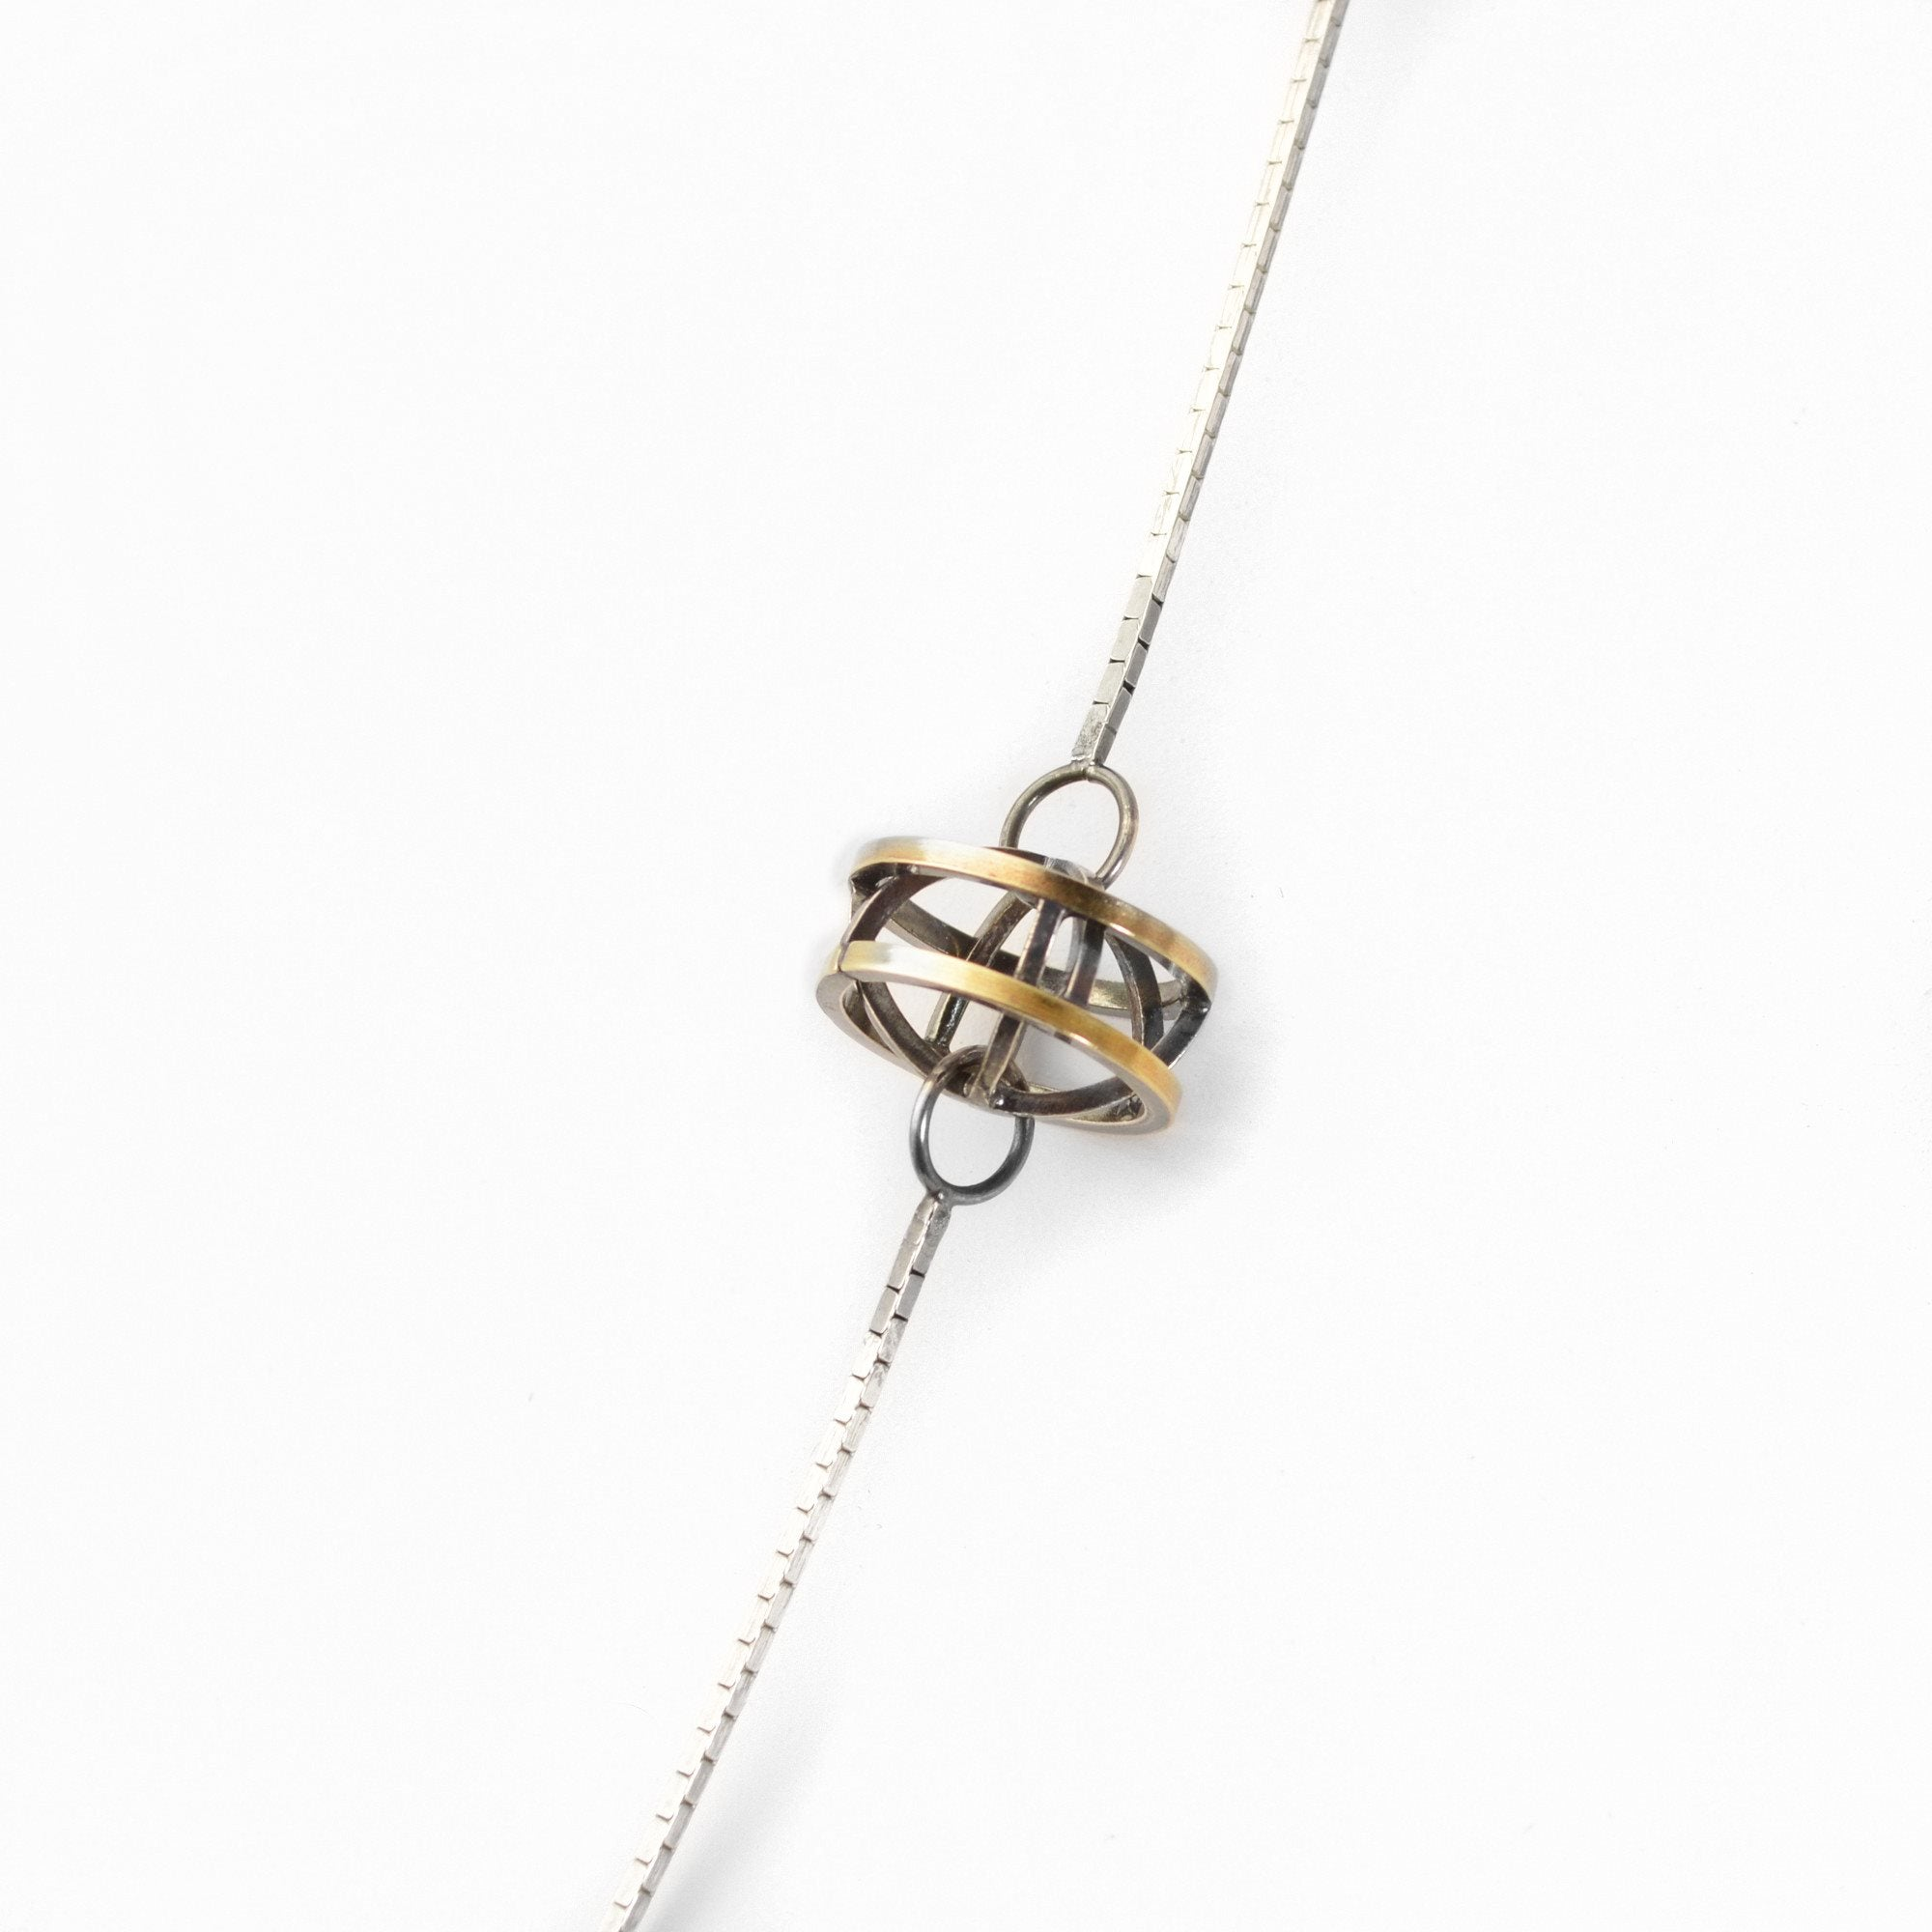 Lattis Long Necklace in Black and Gold with three Geometric Stations